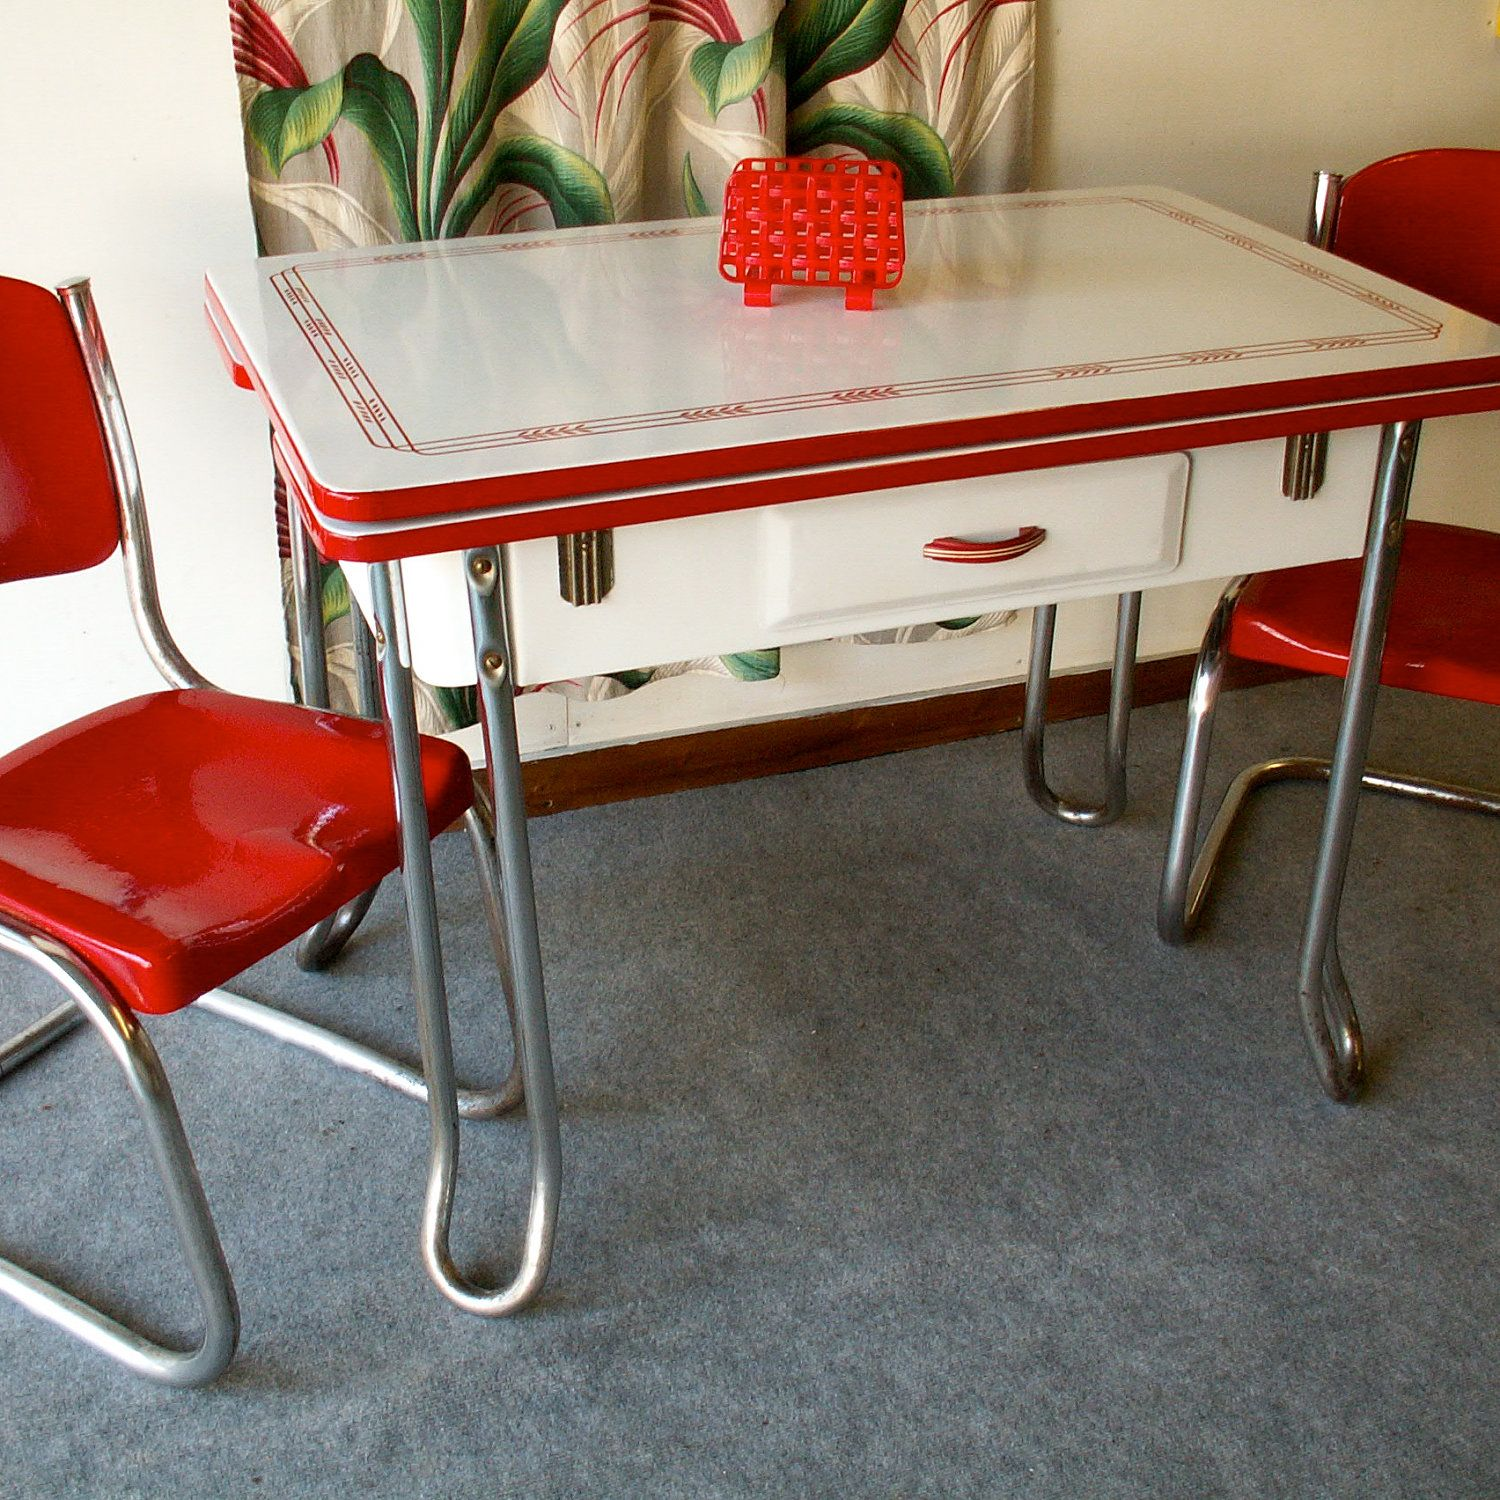 Kitchenette Dining Sets: Vintage Red And White Porcelain Table